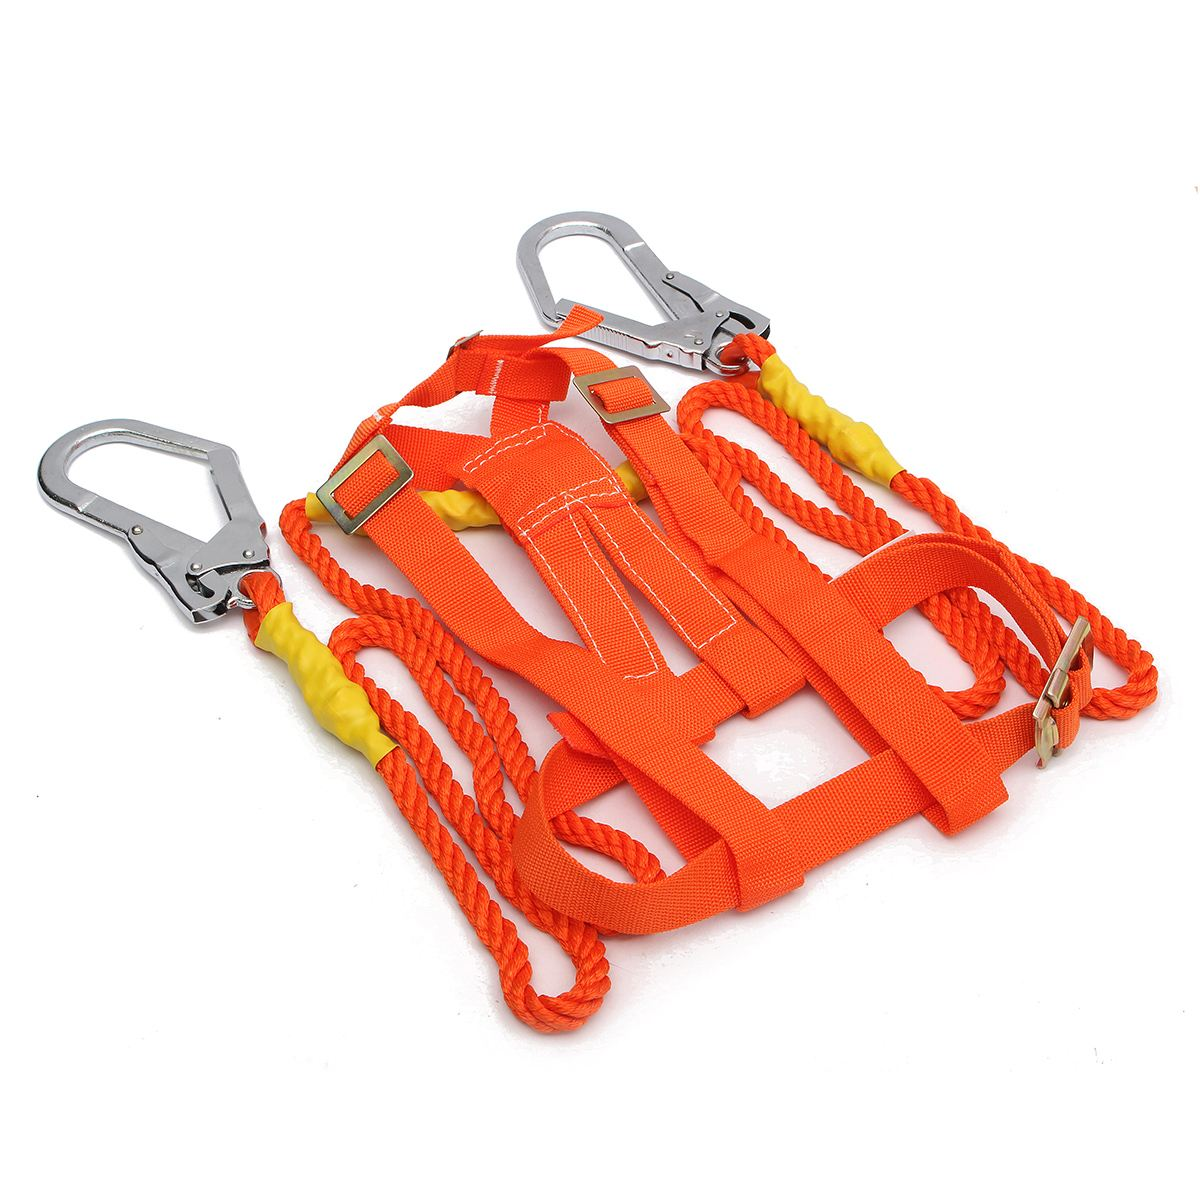 NEW Safurance Outdoor Climbing Climb Mountain Rope Safety Waist Belt Protection Equipment Workplace Safety Harness hinda family lifeline 10mm wire rope core fire protection safety rope escape rope down device